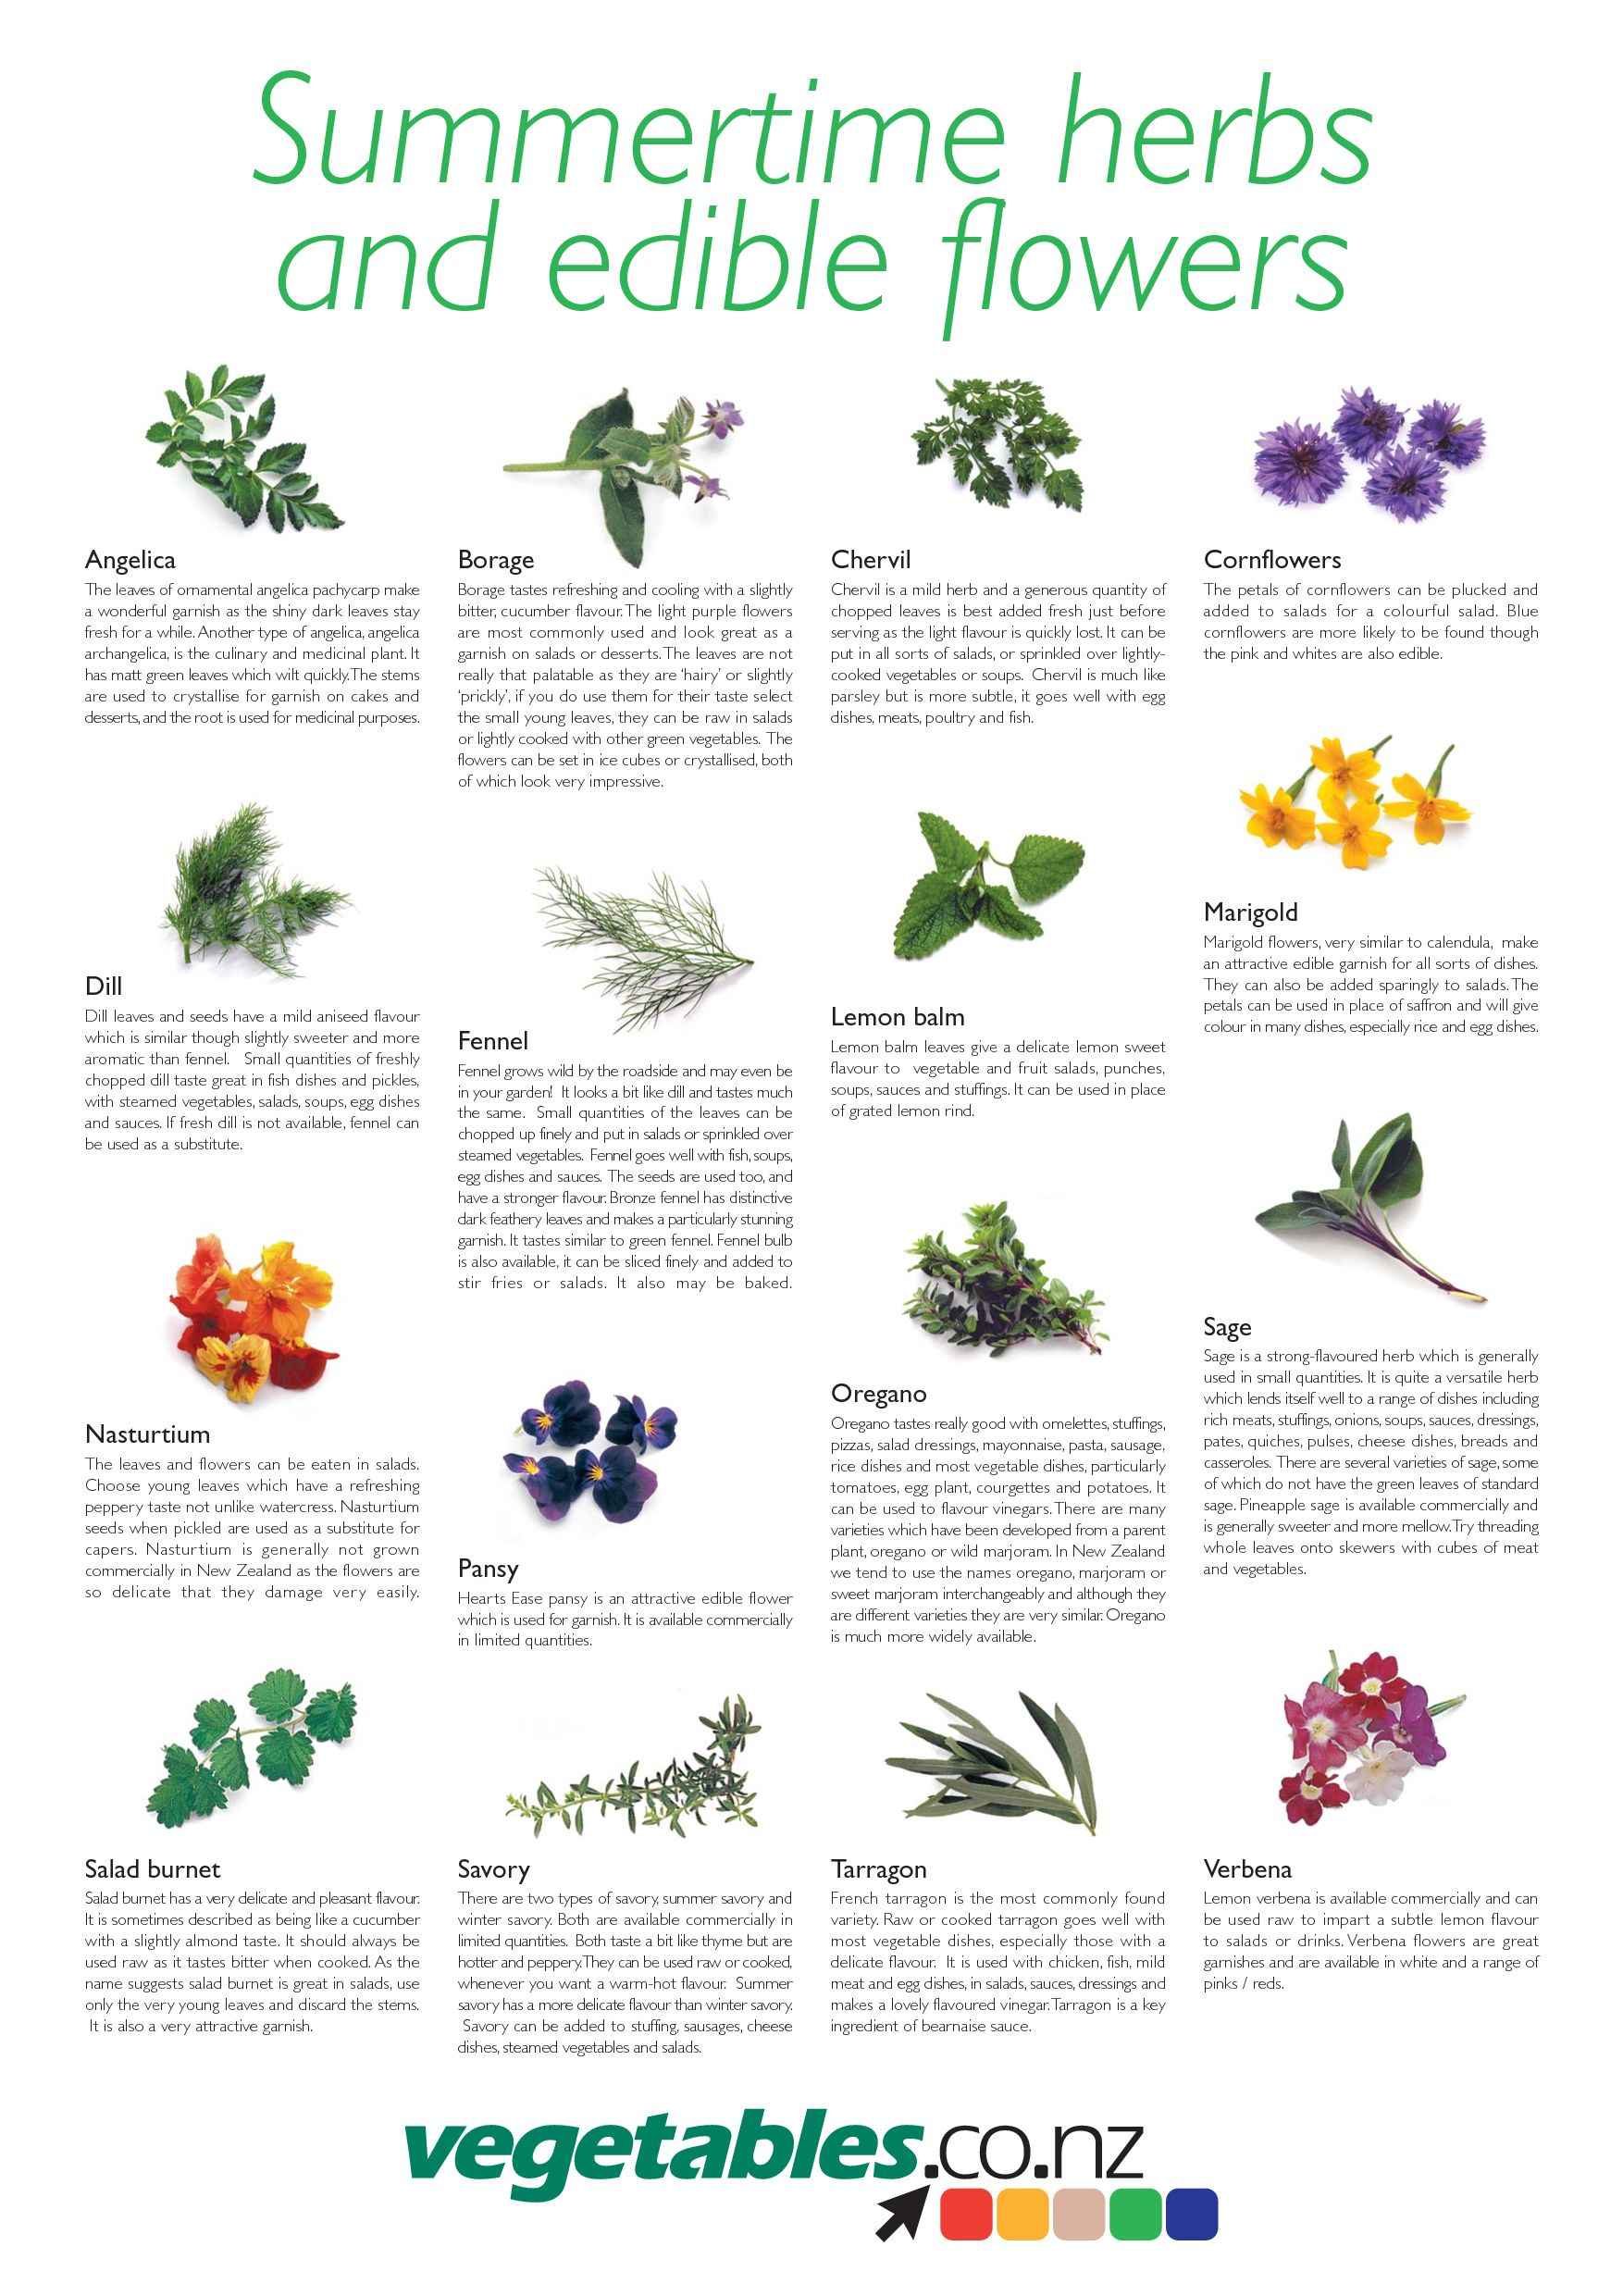 The spice doc edible and medicinal flowers - Herbs And Edible Flowers